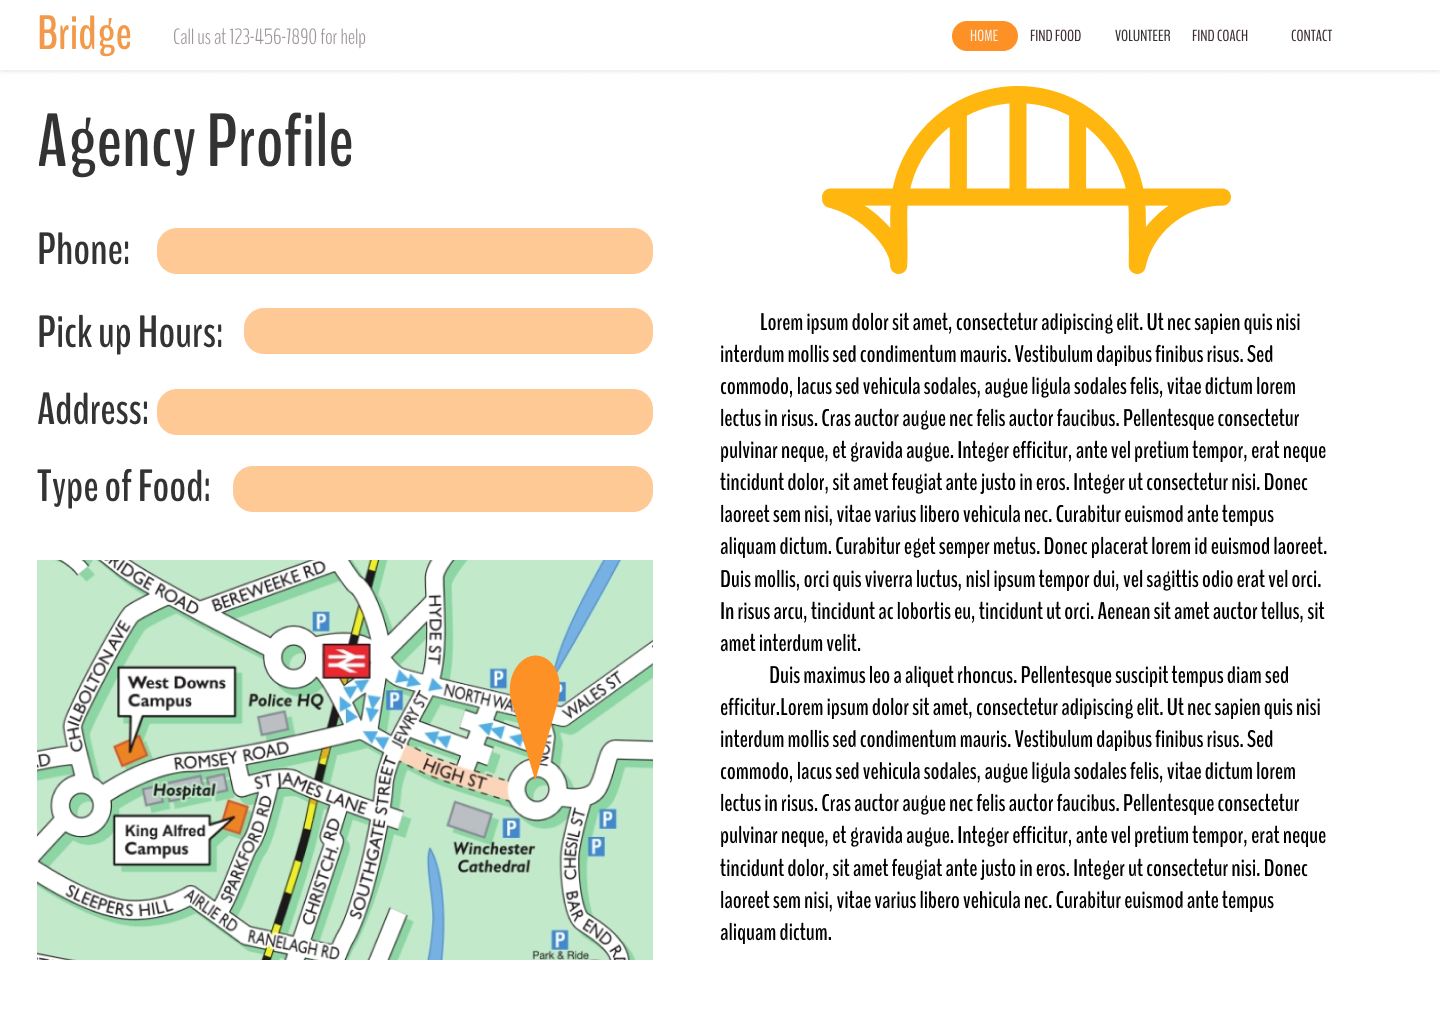 Agency Profile Page